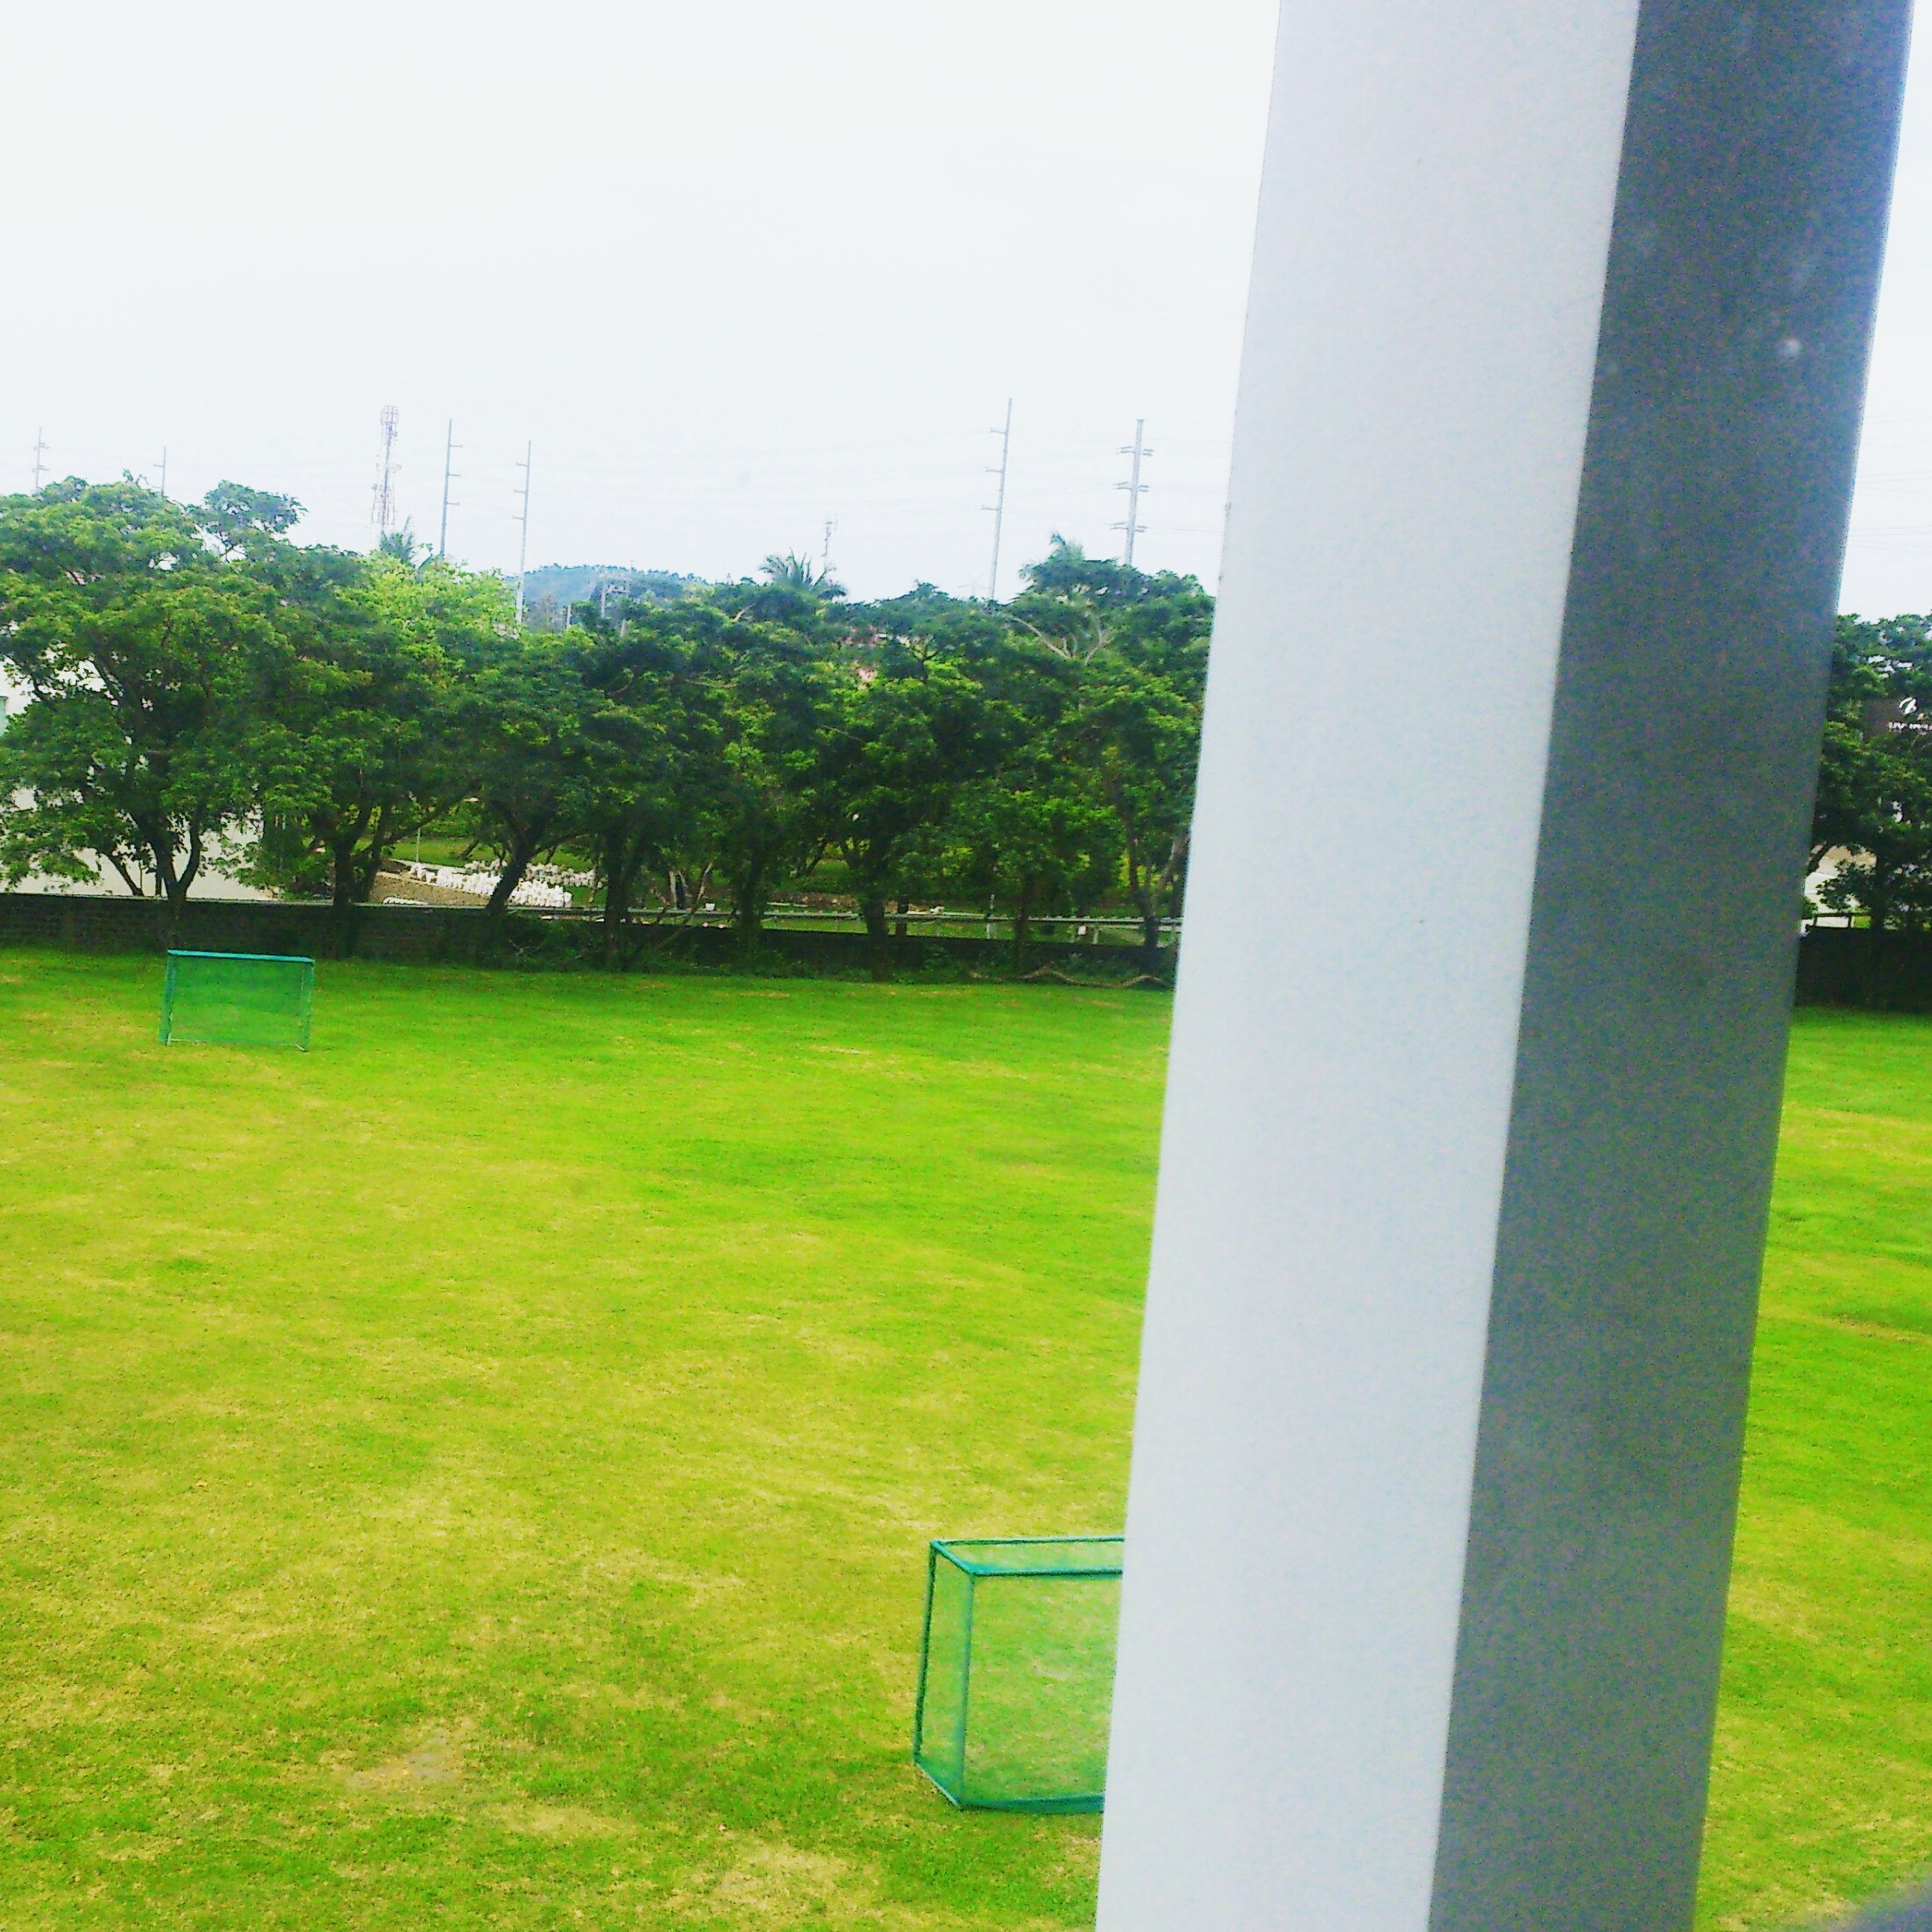 grass, green color, tree, grassy, lawn, field, park - man made space, growth, grassland, built structure, clear sky, architecture, green, nature, day, building exterior, landscape, sky, tranquility, park